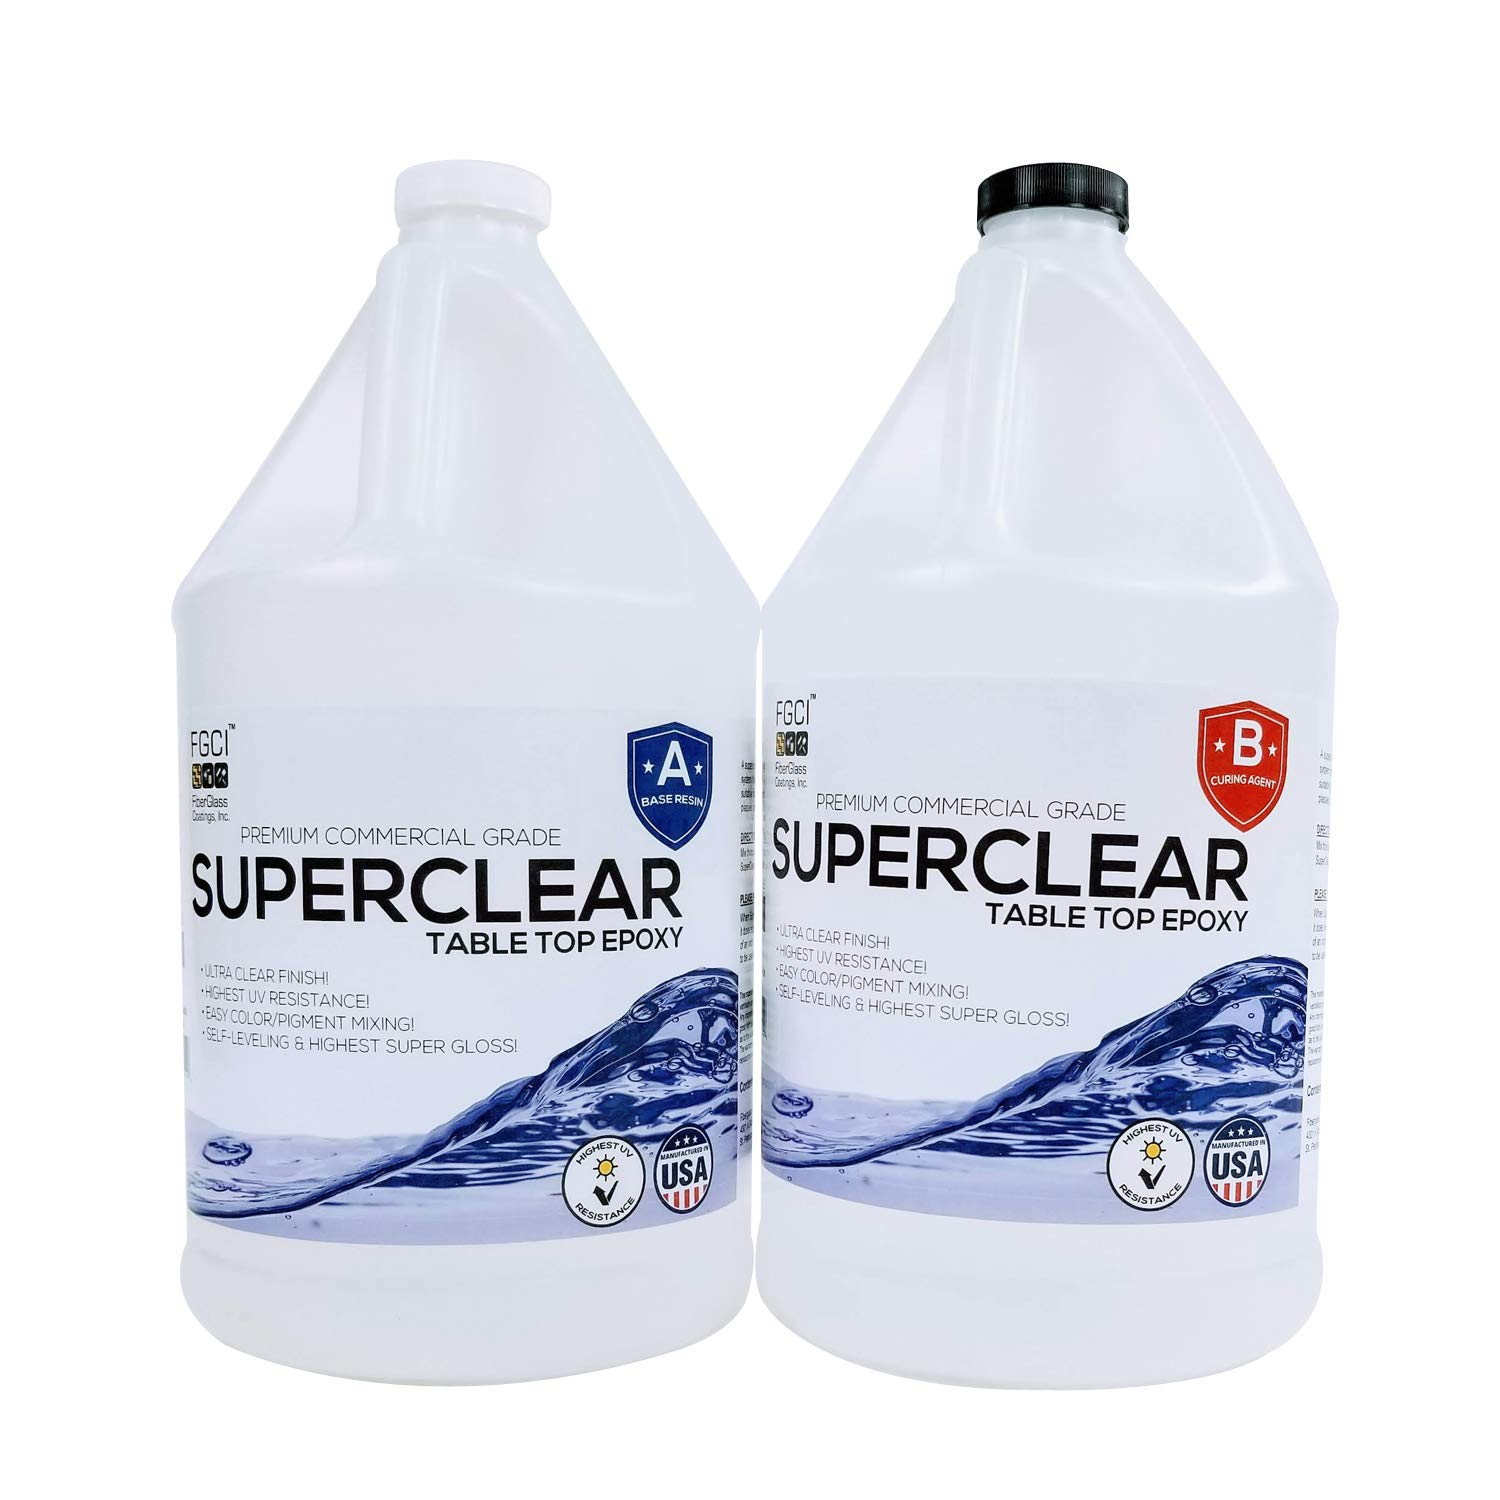 Amazon coupon code for SUPERCLEAR EPOXY Resin Crystal Clear 2 Gallon